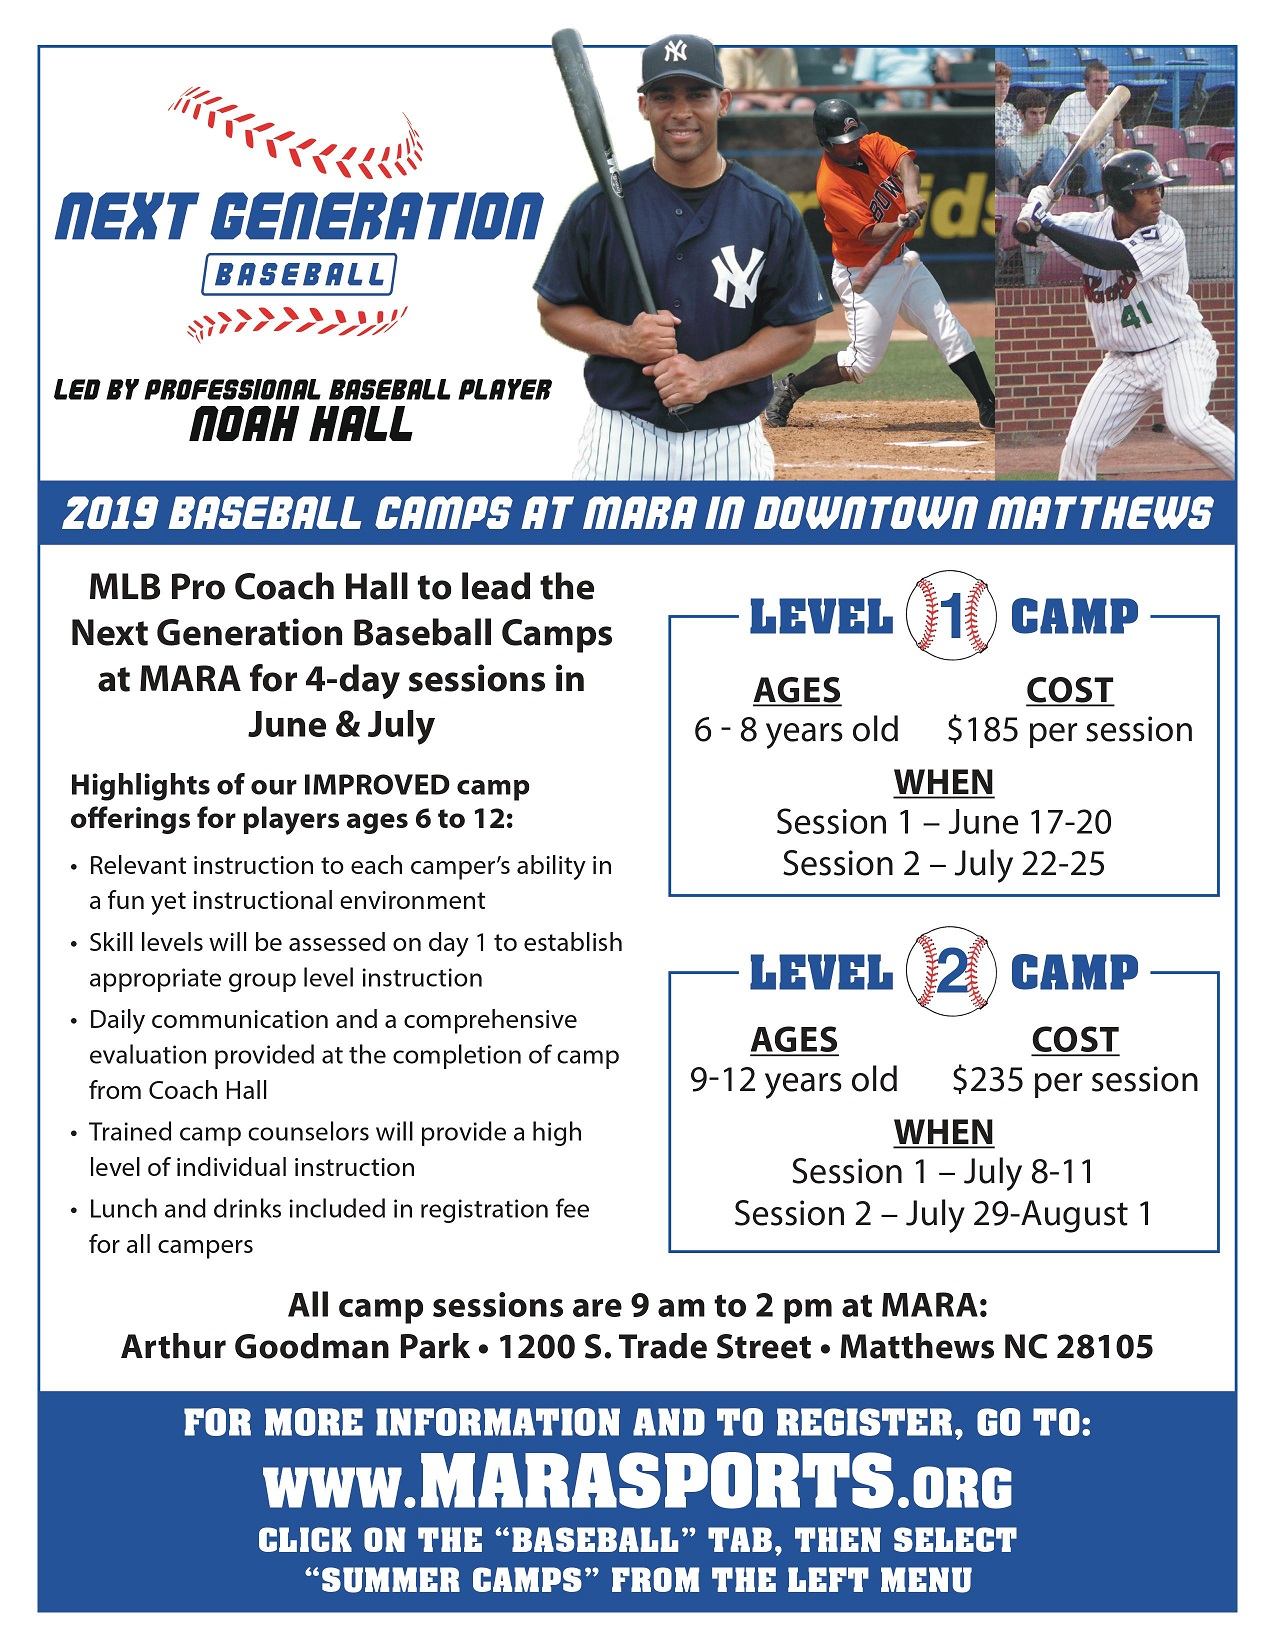 67a1883a86e by Next Generation Baseball Camps posted 02 18 2019